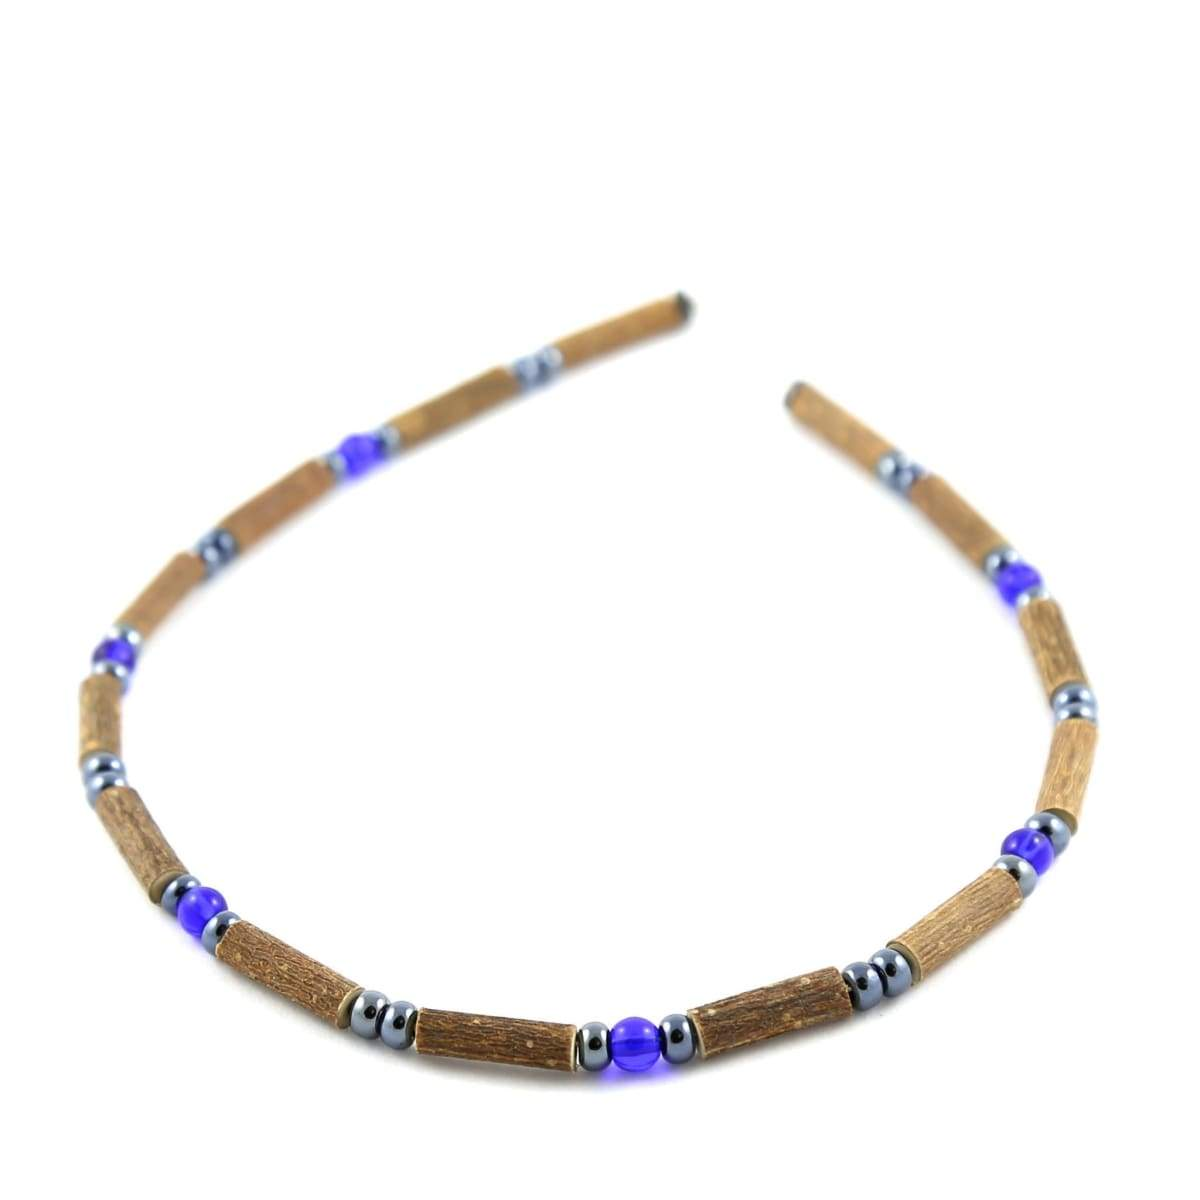 Hazelwood Dark Blue & Hematite - 11 Necklace - Barrel Clasp - Hazelwood Jewelry